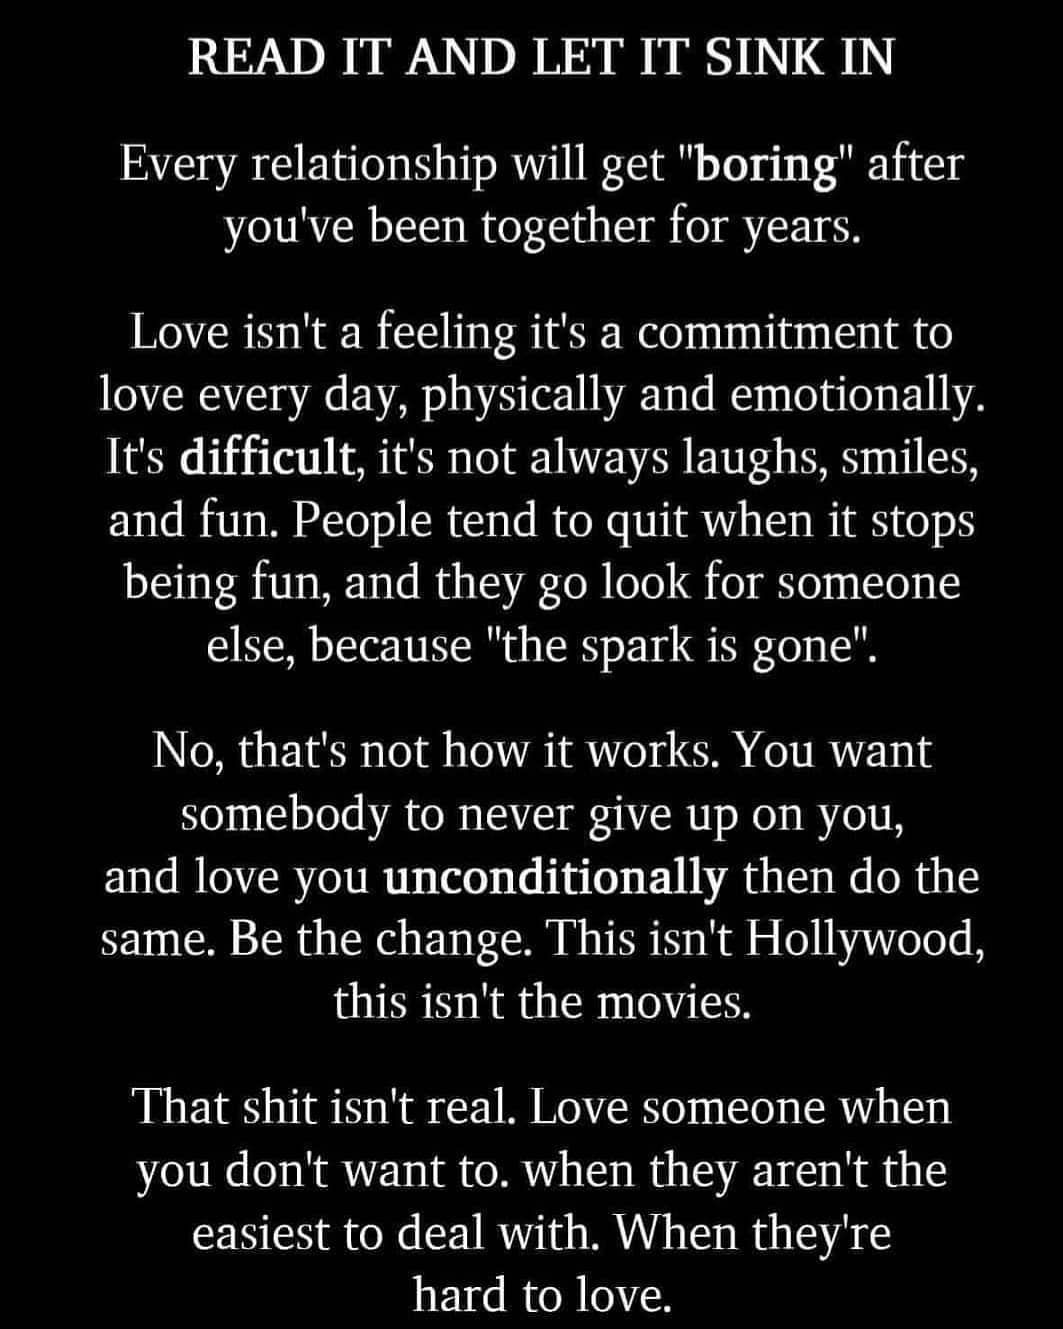 Every Relationship Will Get Boring After You Ve Been Together For Years It S Not Always Laughs Smiles And Fun Heart Quotes Lion Heart Quotes Relationship